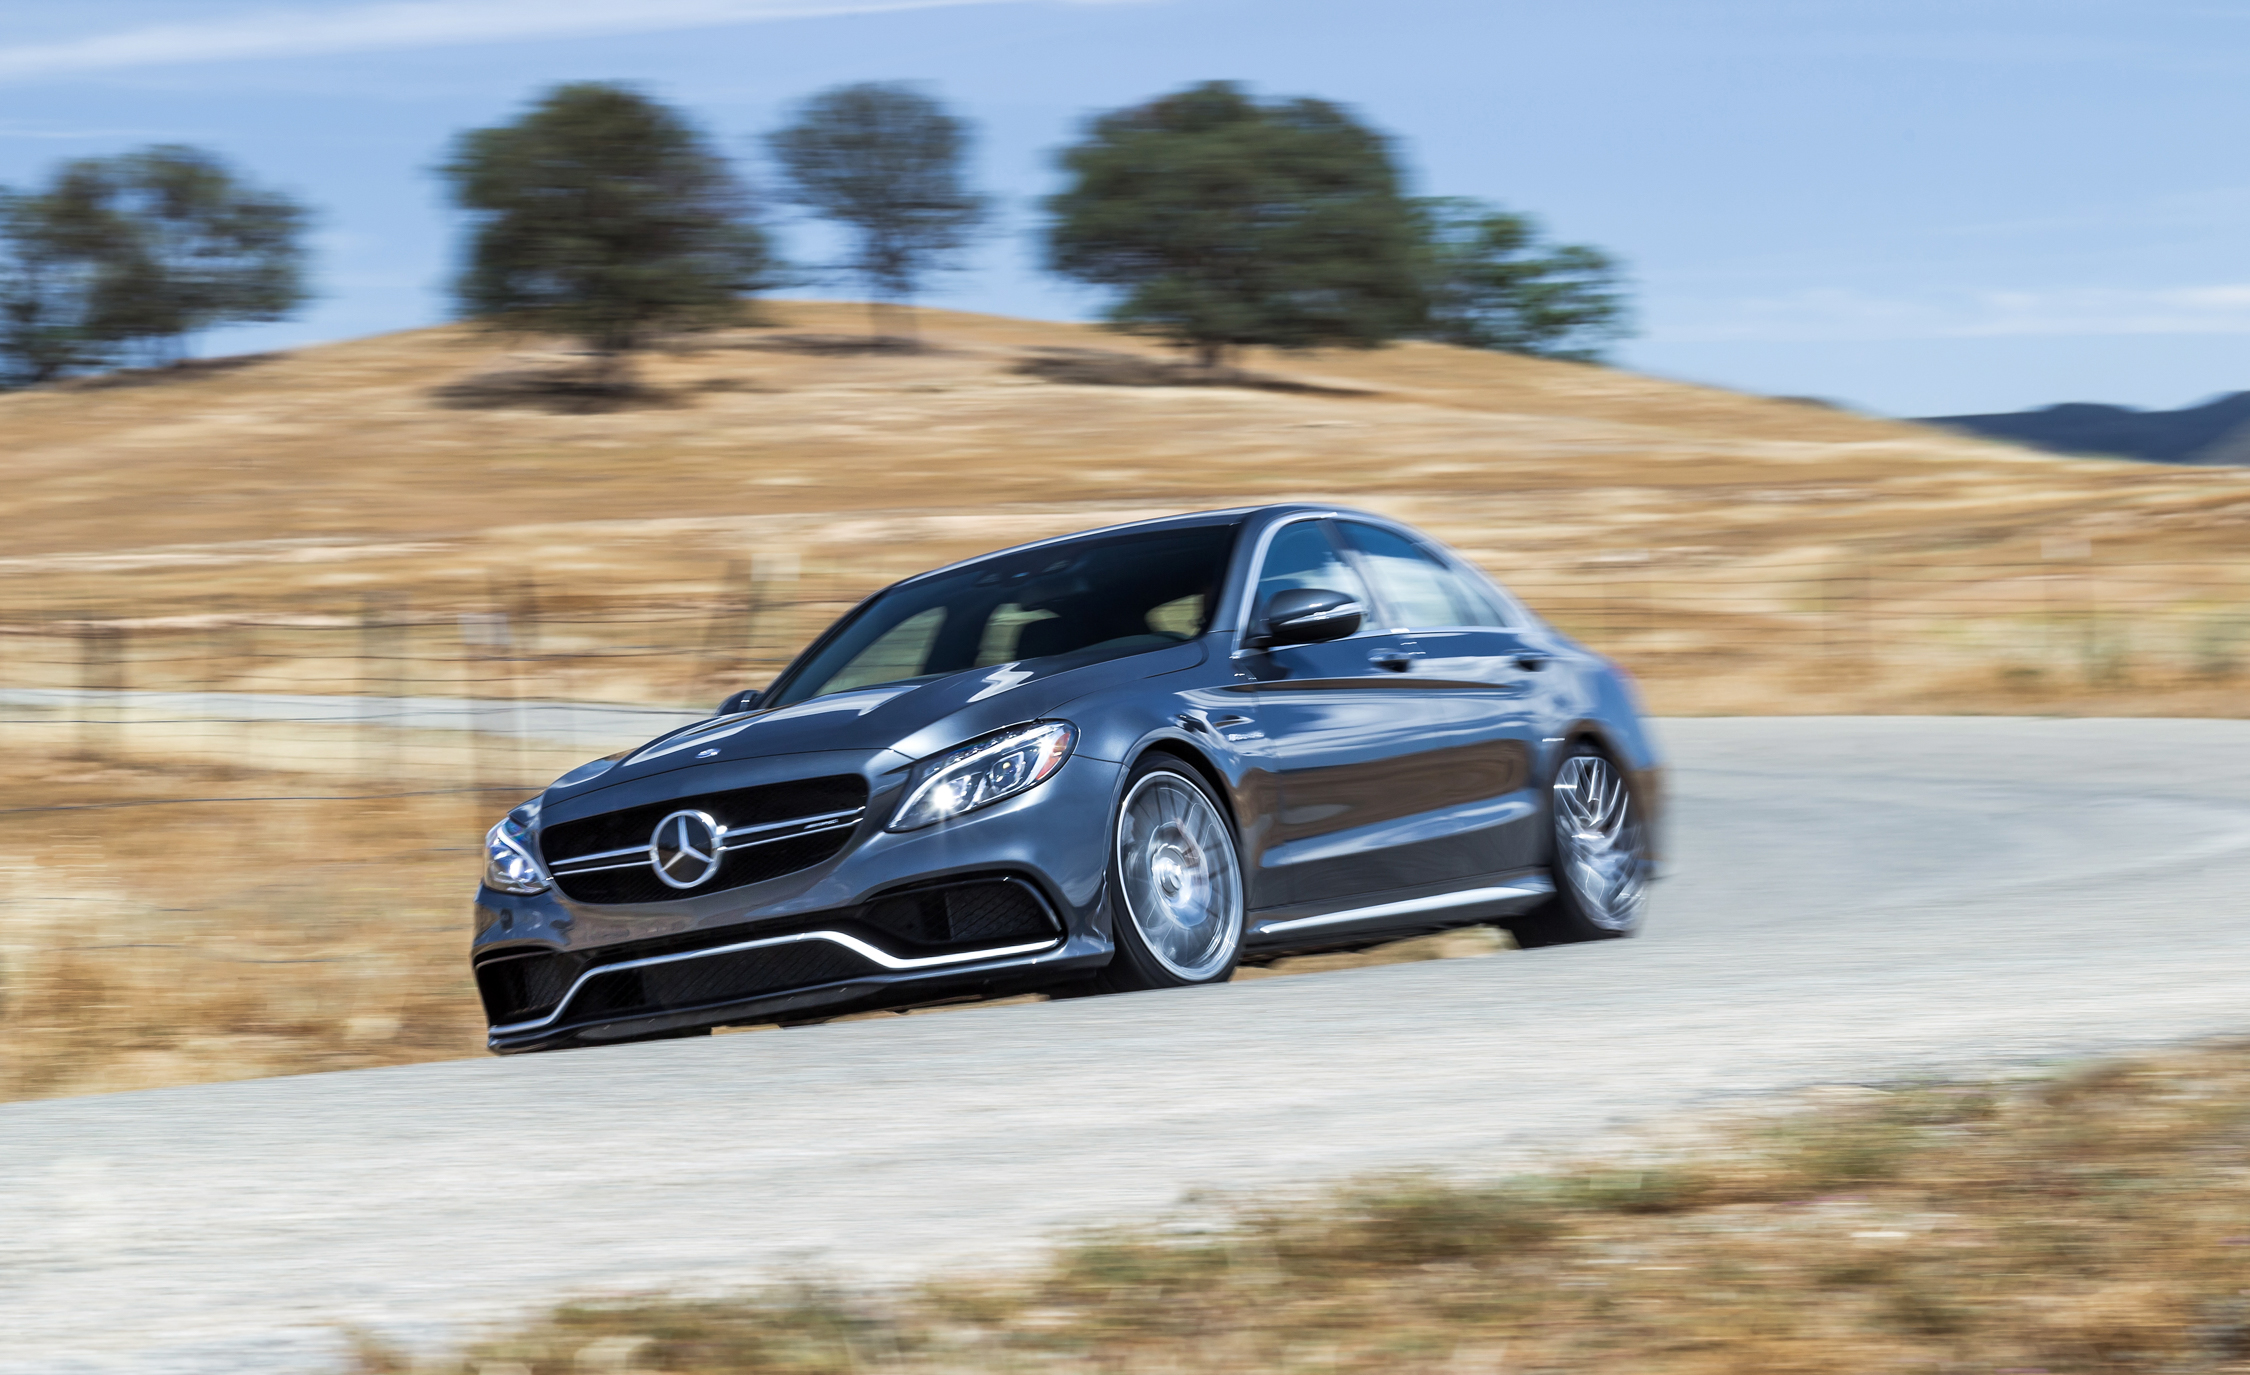 2015 Mercedes-AMG C63 S-Model Performance Test